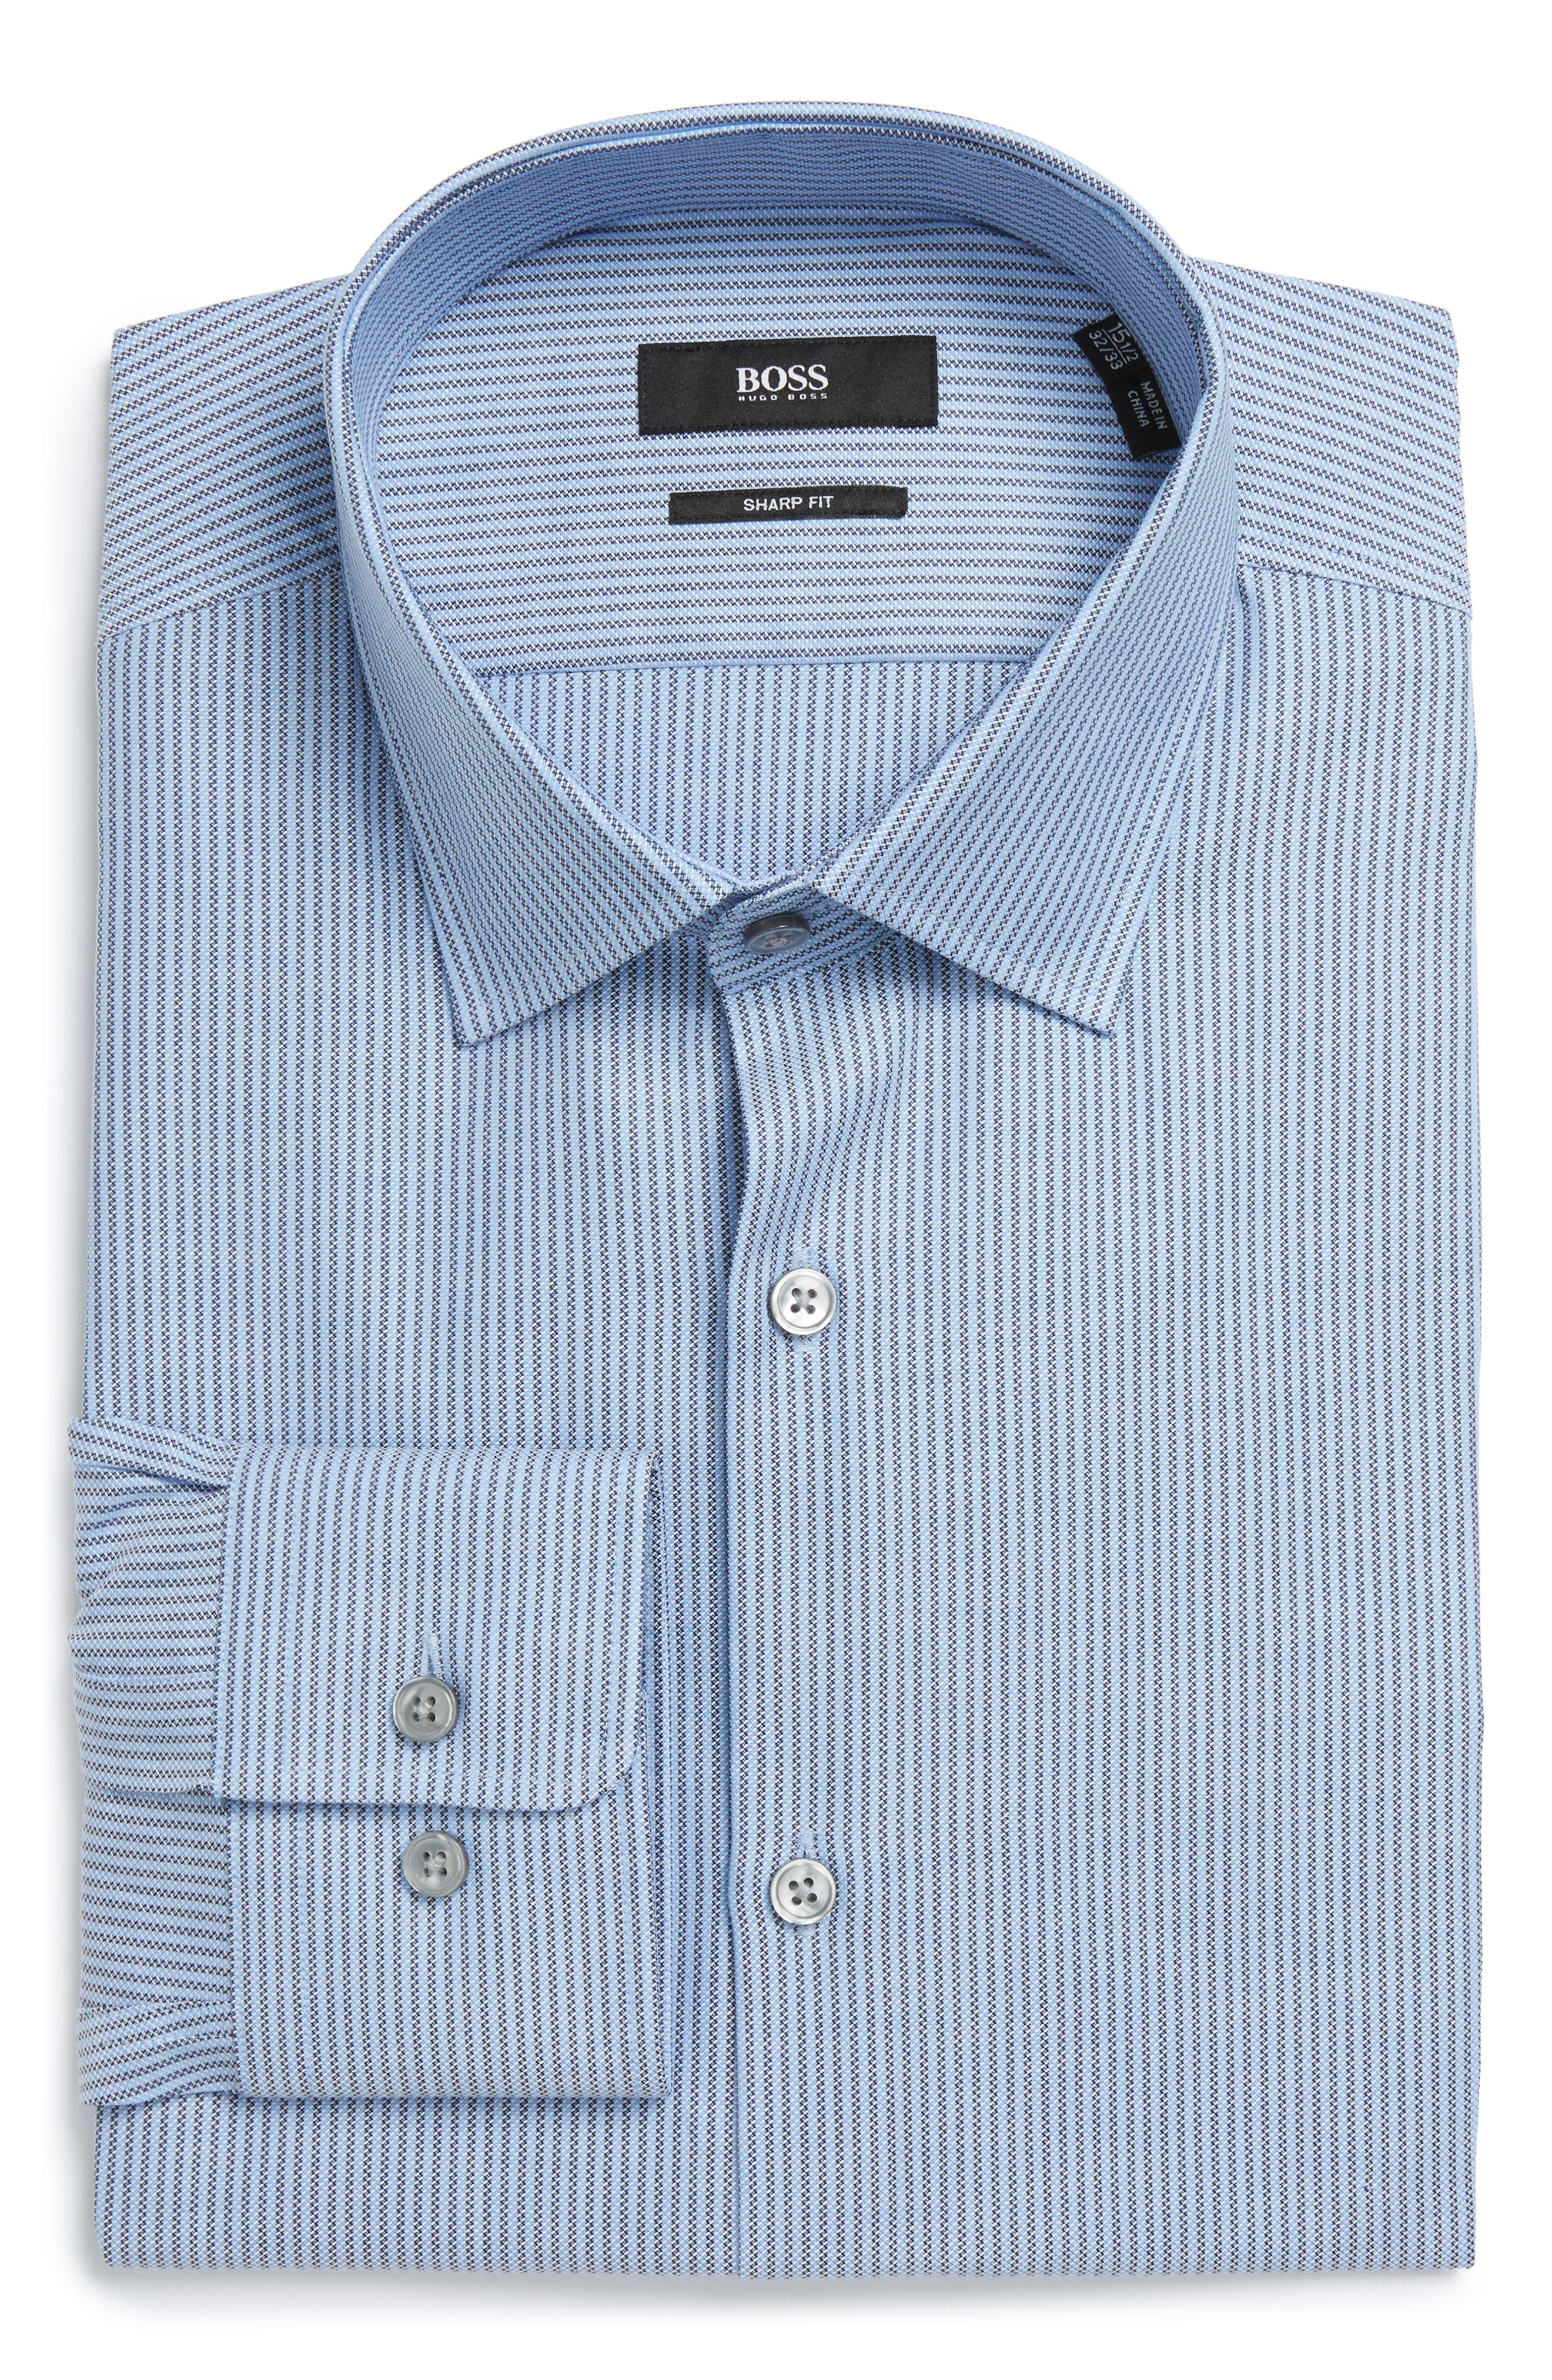 BOSS Marley US Sharp Fit Stripe Dress Shirt